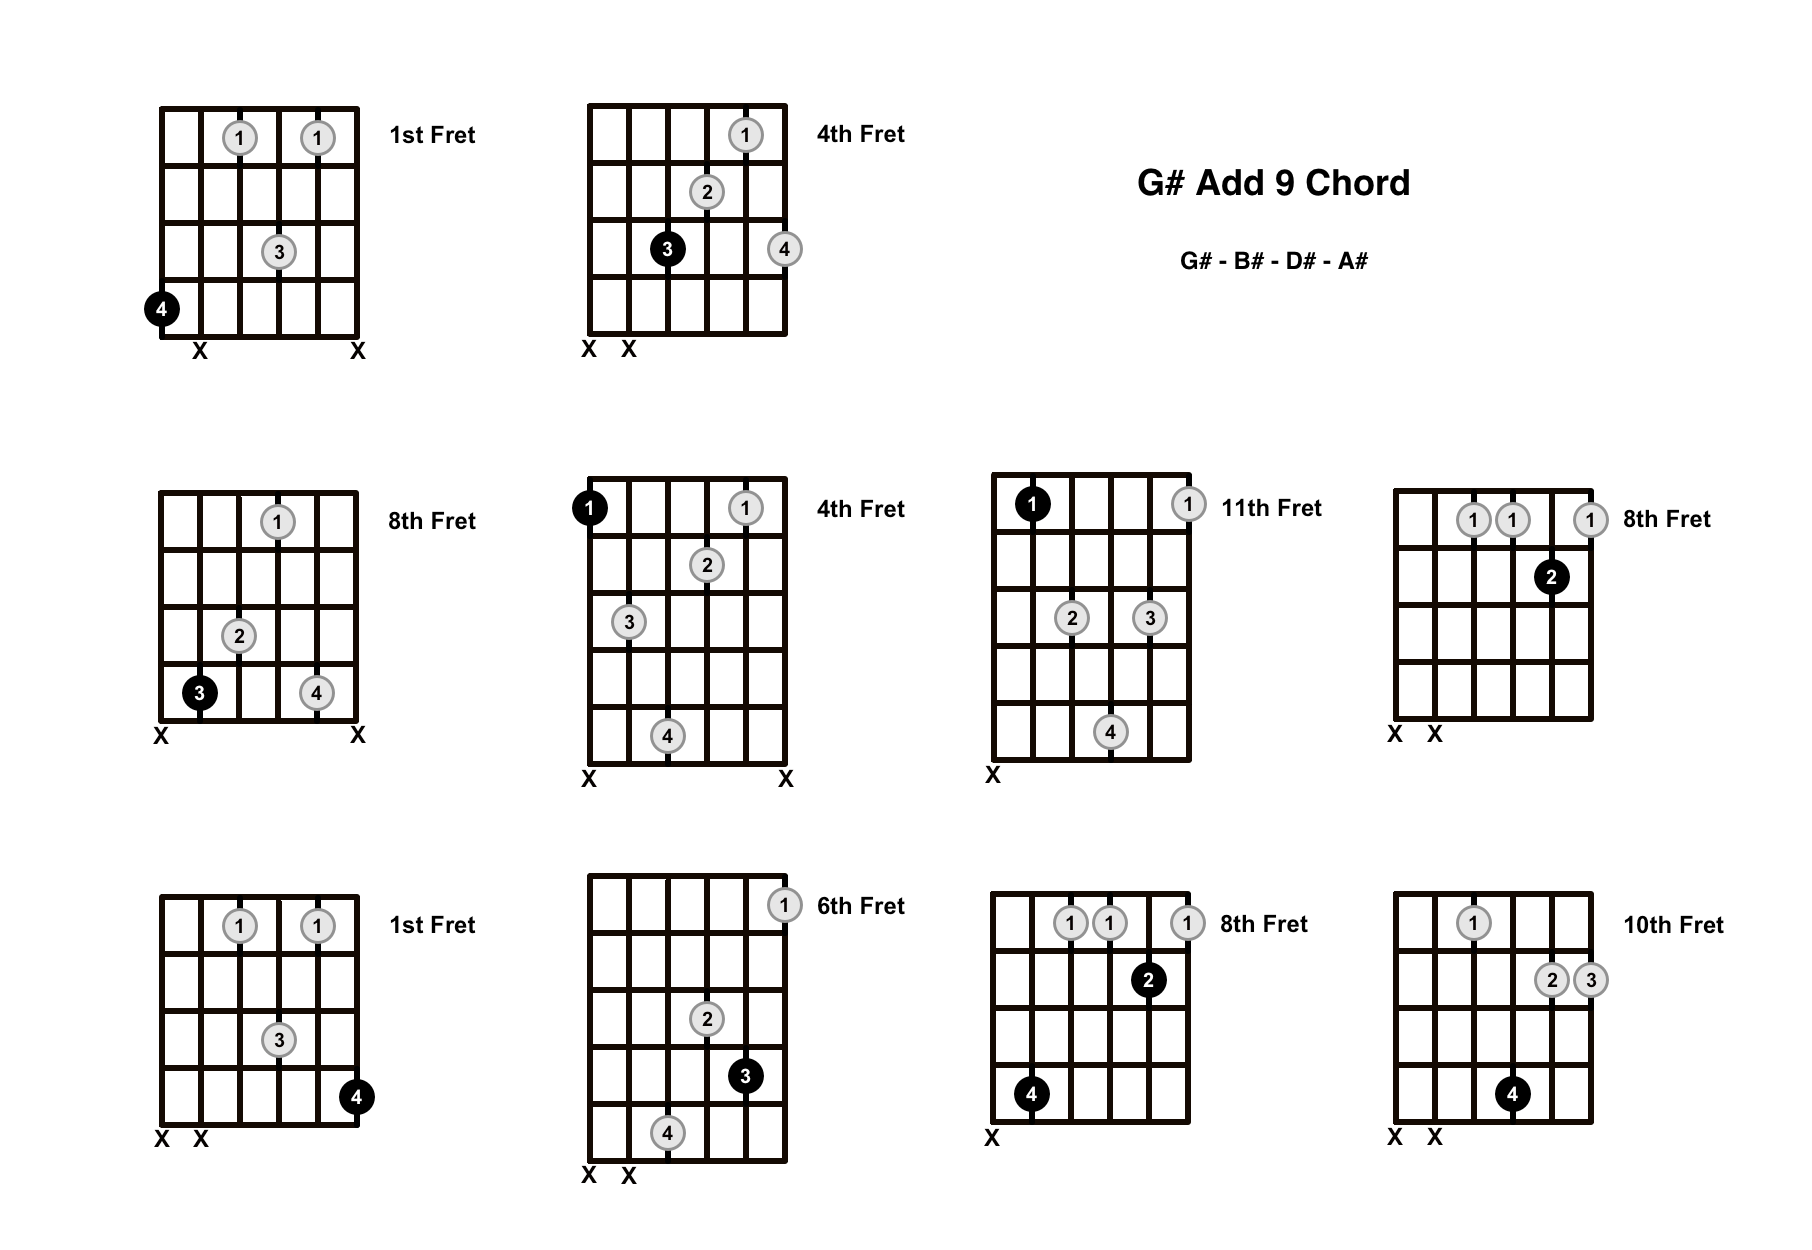 G# Add 9 Chord On The Guitar (G Sharp Add 9/G Sharp Add 2) – Diagrams, Finger Positions and Theory